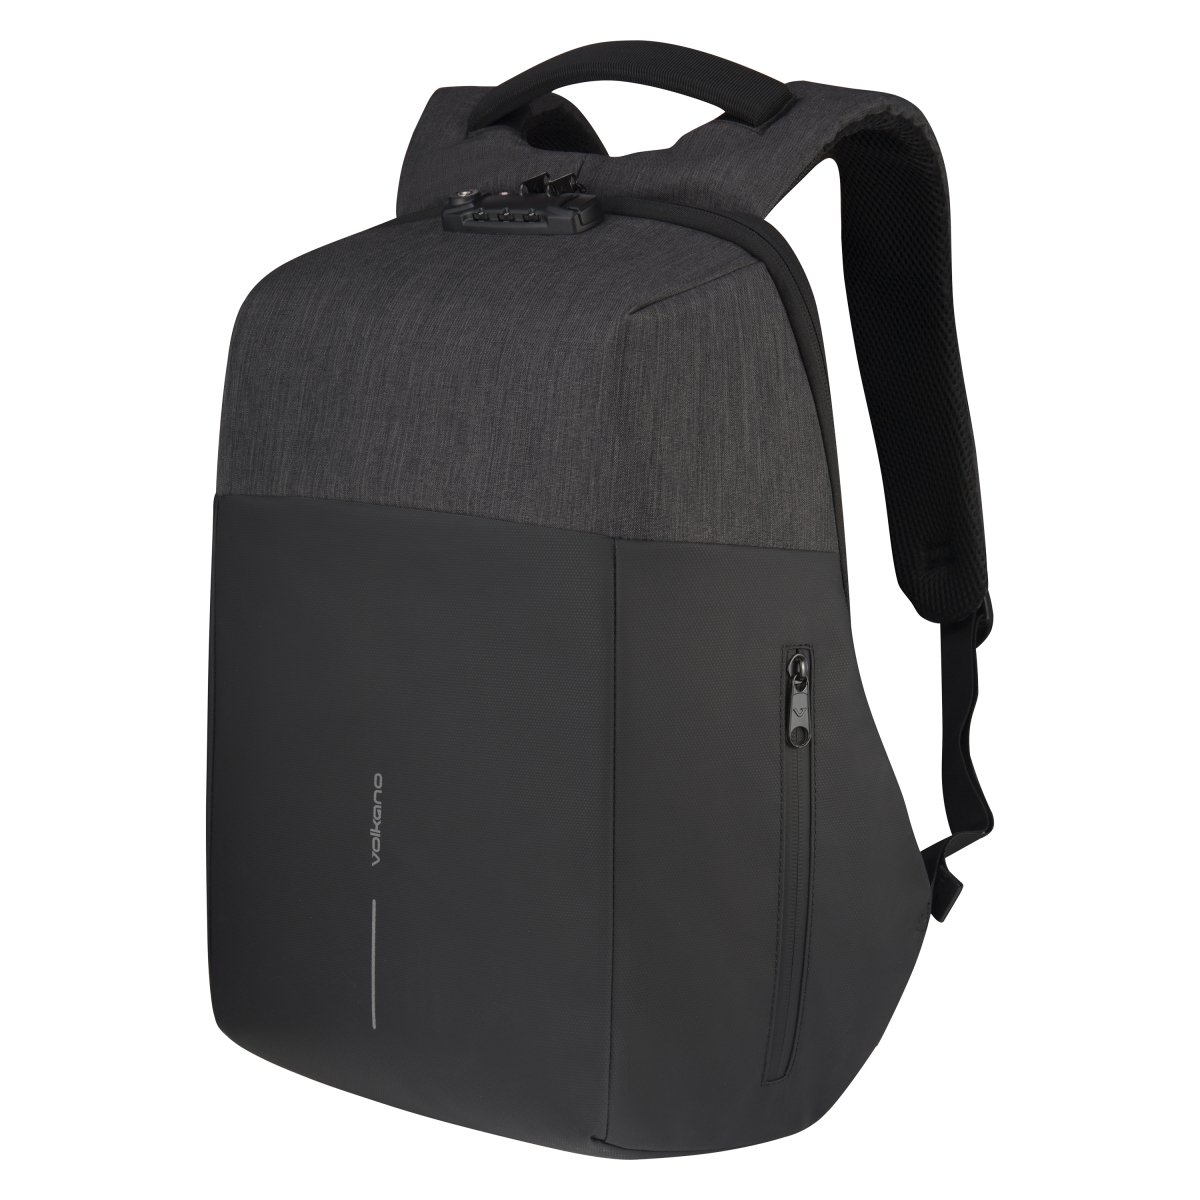 "Volkano раница за лаптоп Laptop Smart anti-theft Backpack 15.6"" - VK-7081-BKCH"